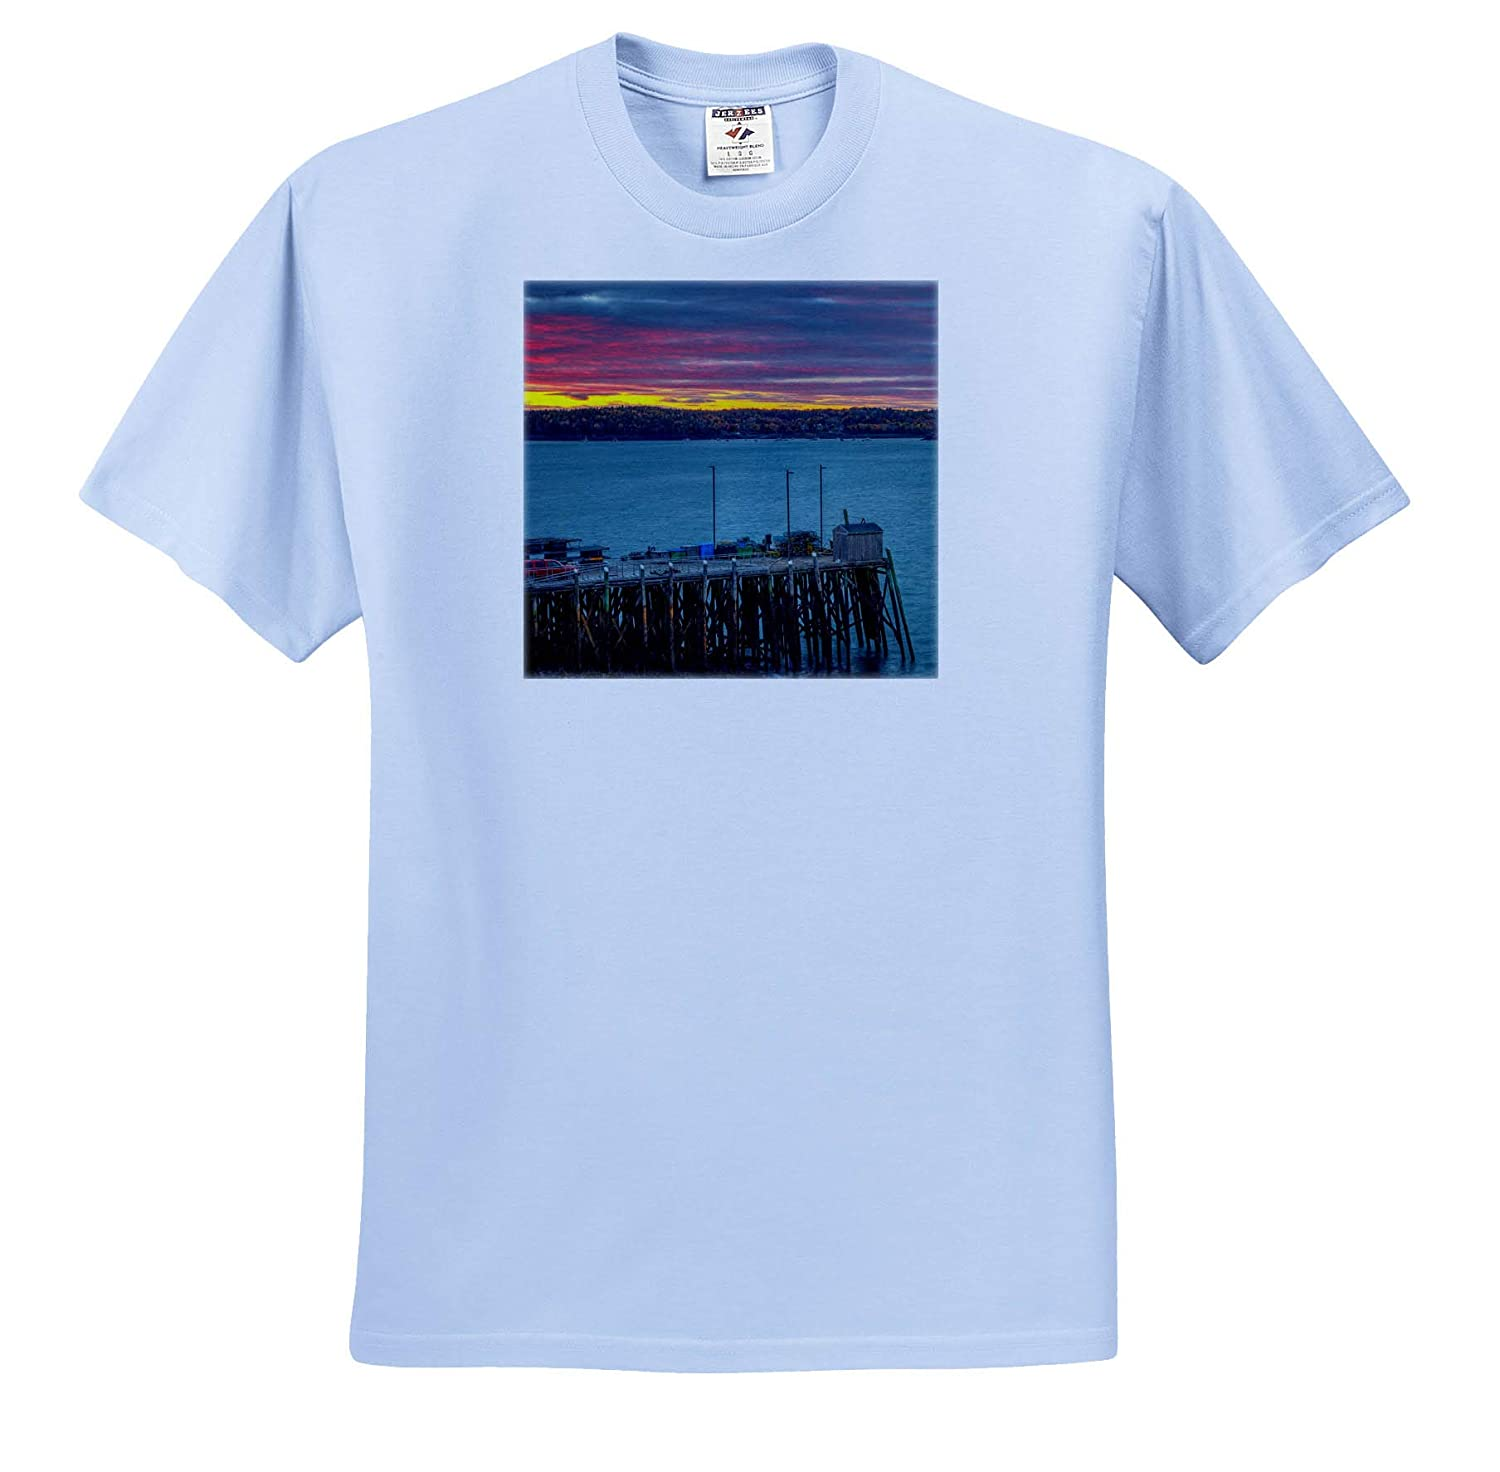 Adult T-Shirt XL Landscapes ts/_317163 3dRose Mike Swindle Photography Sunset in The Harbor